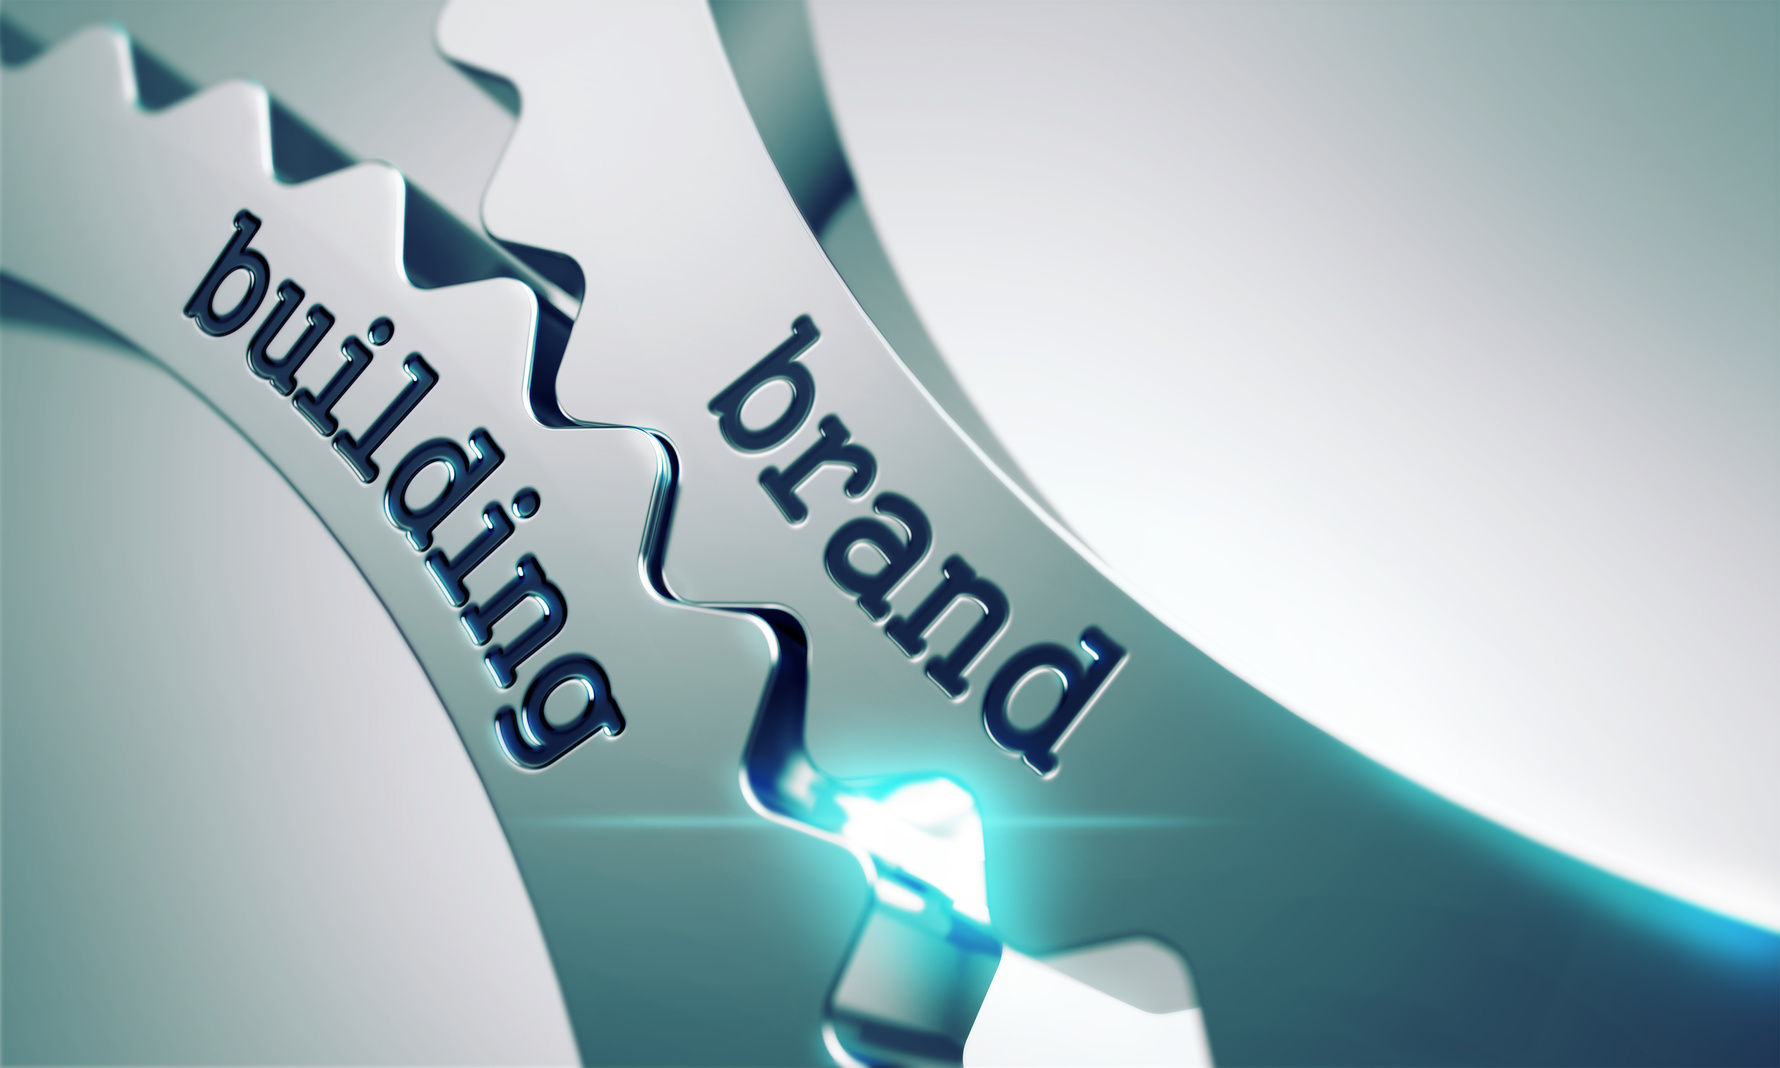 6 Professional Tips You Need to Know to Improve Your Brand